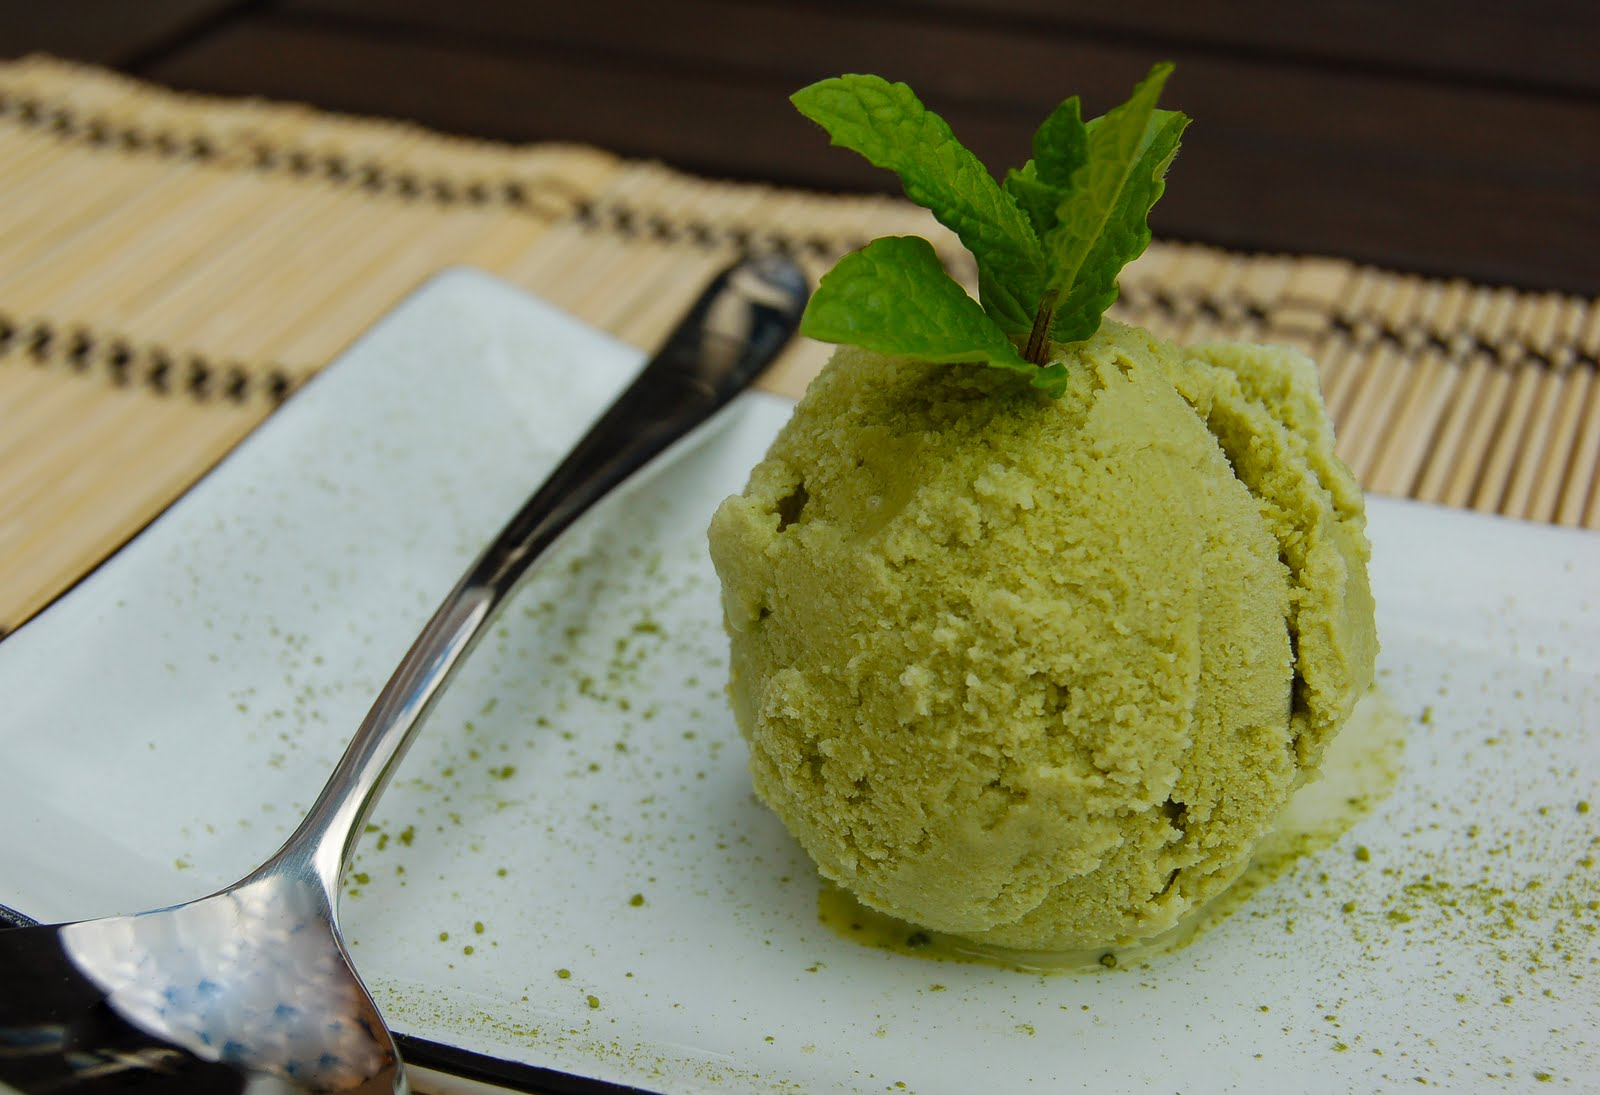 Lyons made: A simply delicious Green Tea Ice Cream recipe.